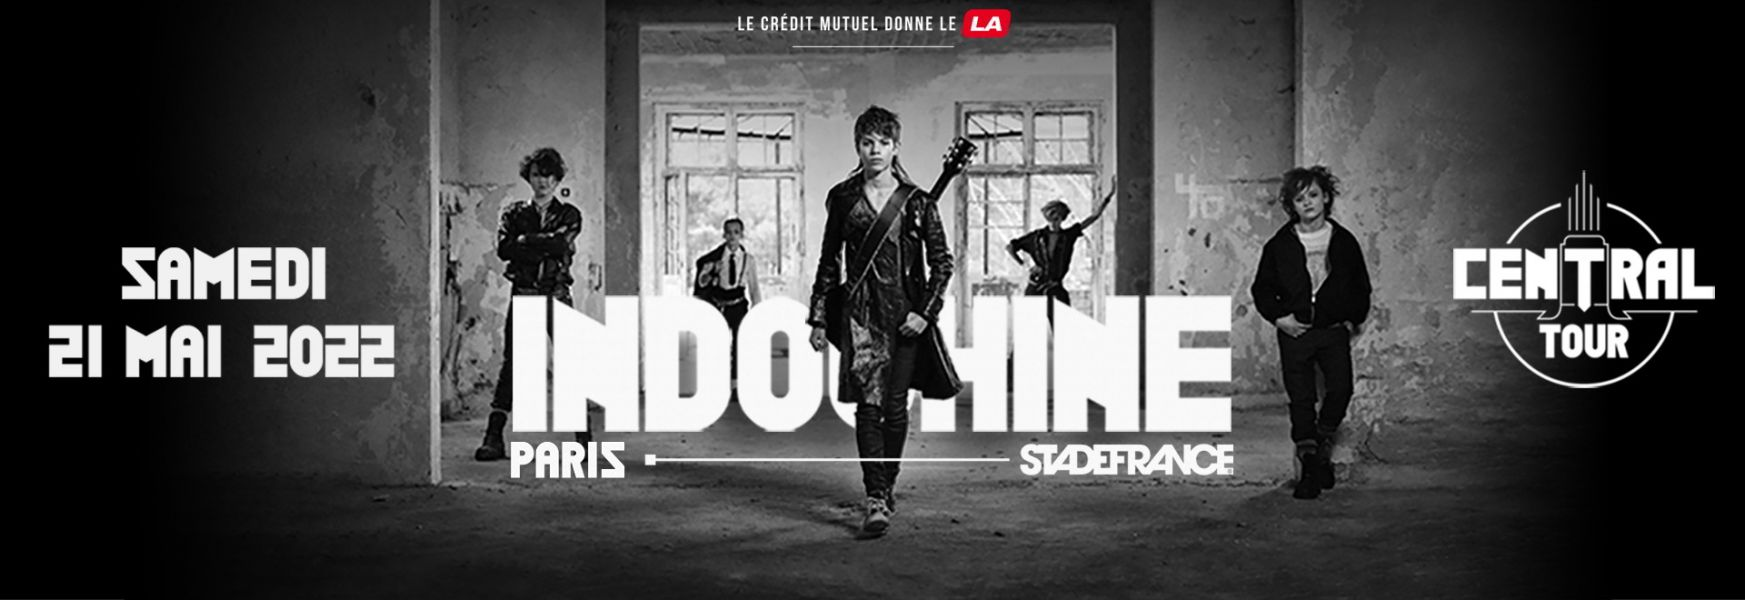 Indochine le samedi 21 mai 2022 au Stade de France